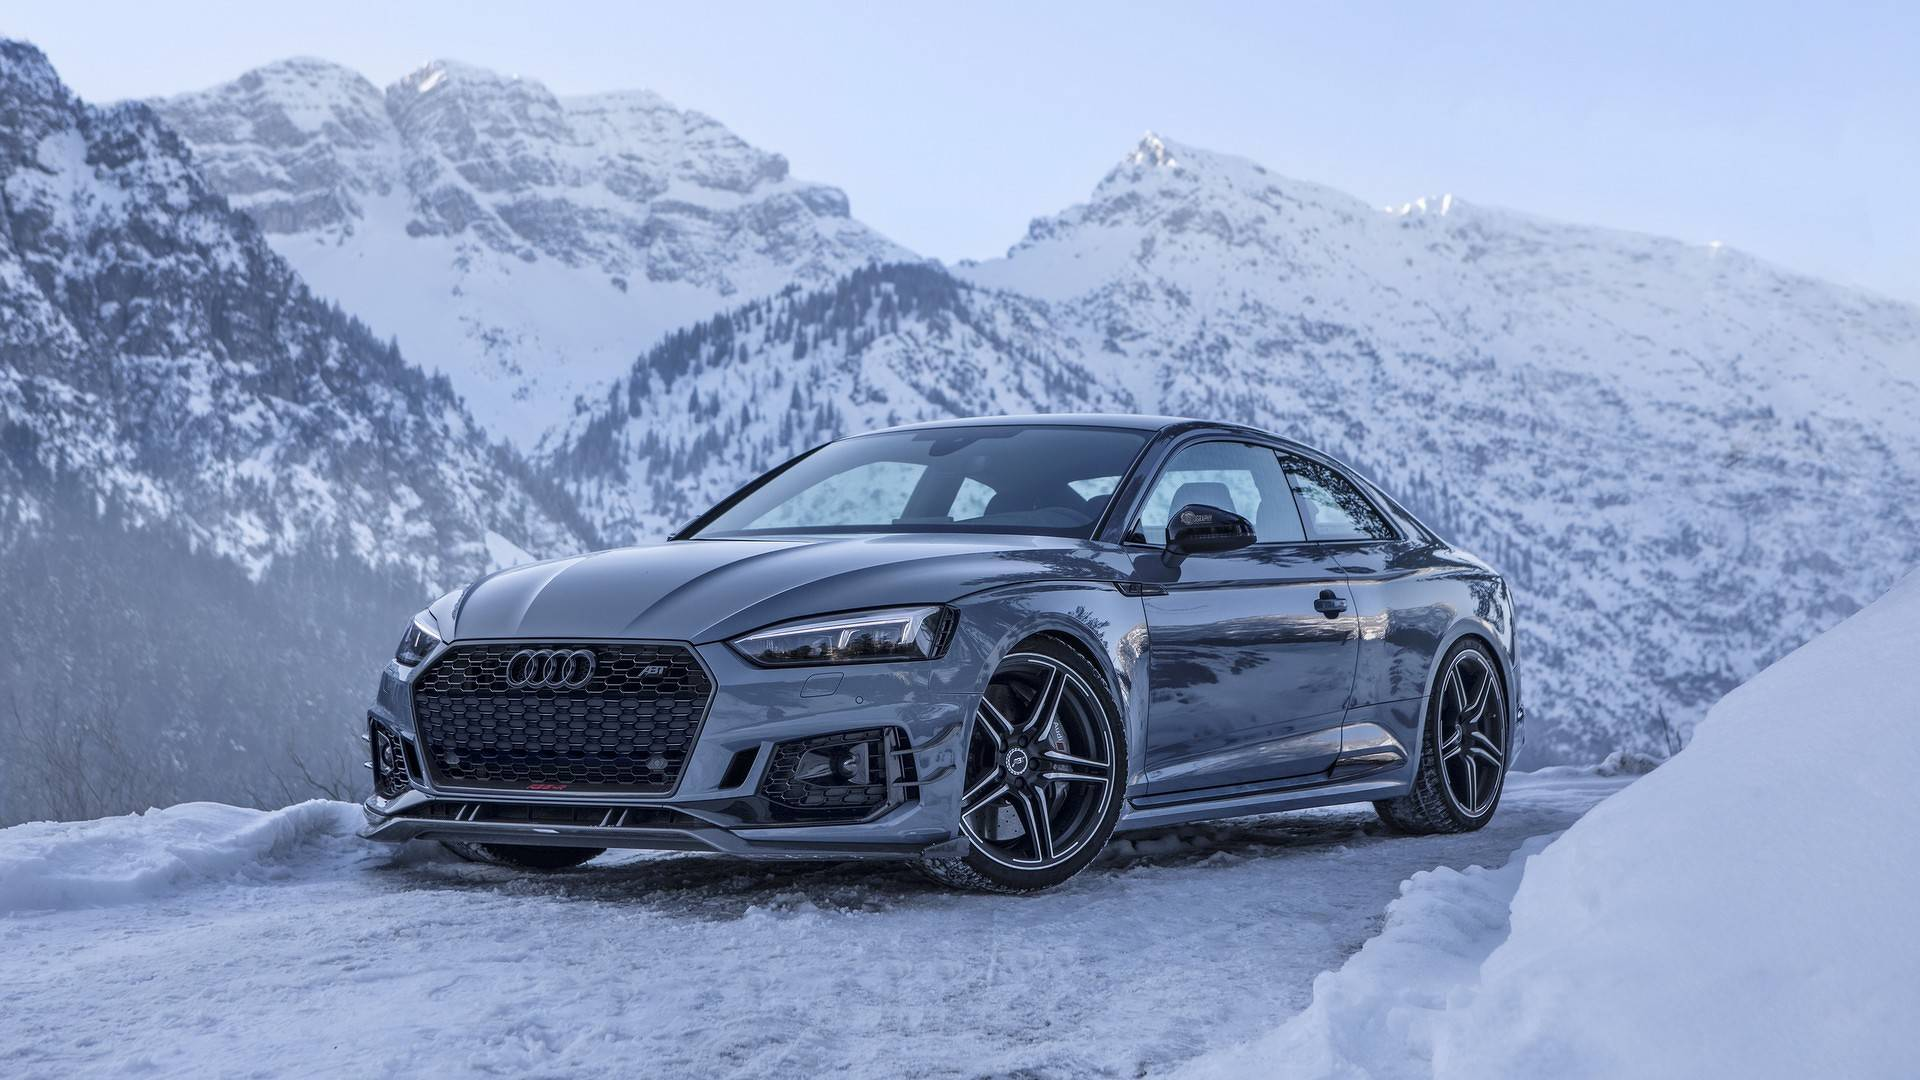 Build A Nissan >> ABT Audi RS5-R On The Austrian Alps - Exotic Car List